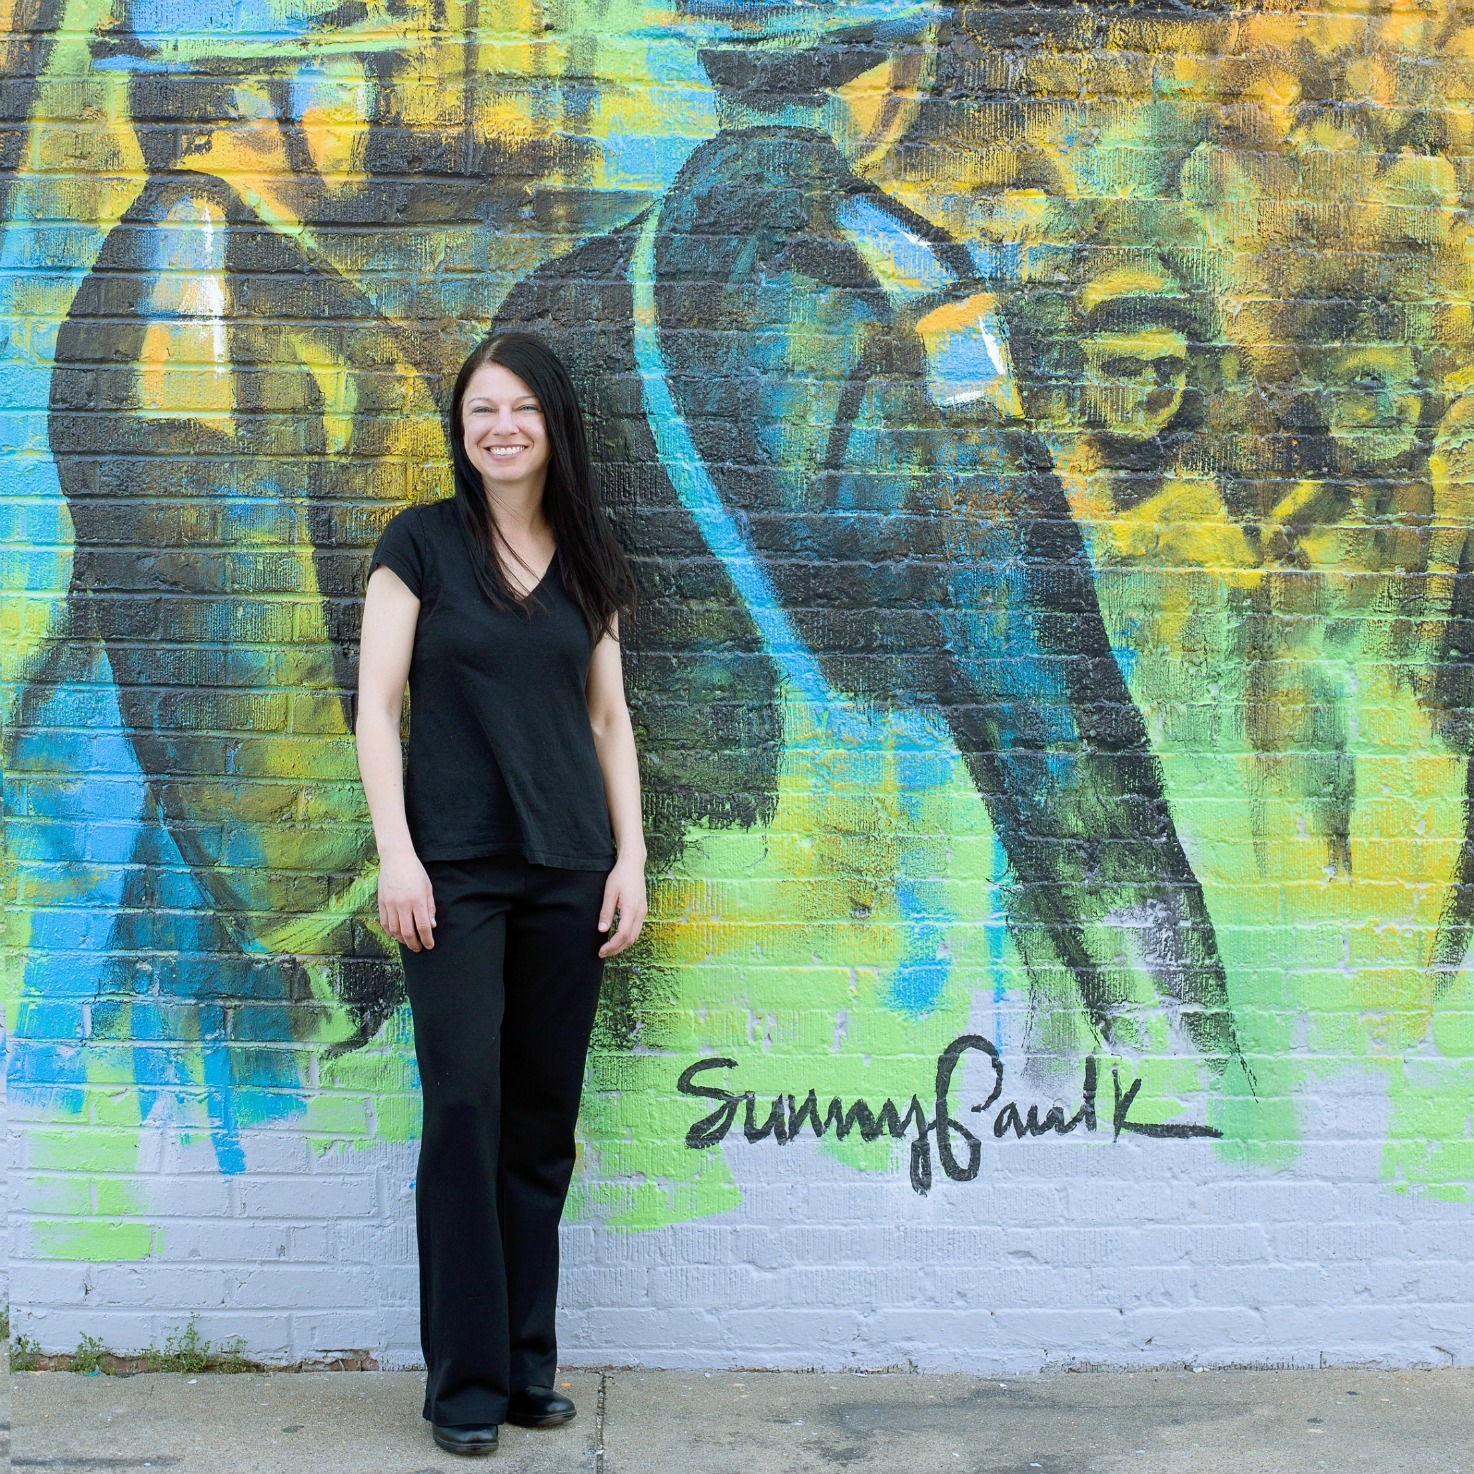 MEET SUNNY - 41, Artist & Graphic DesignerMontgomery, Alabama, USAA VEGAN, HUMAN RIGHTS ADVOCATE AND LIBERAL ARTISt WHO SHINES AS HER TRUE SELF